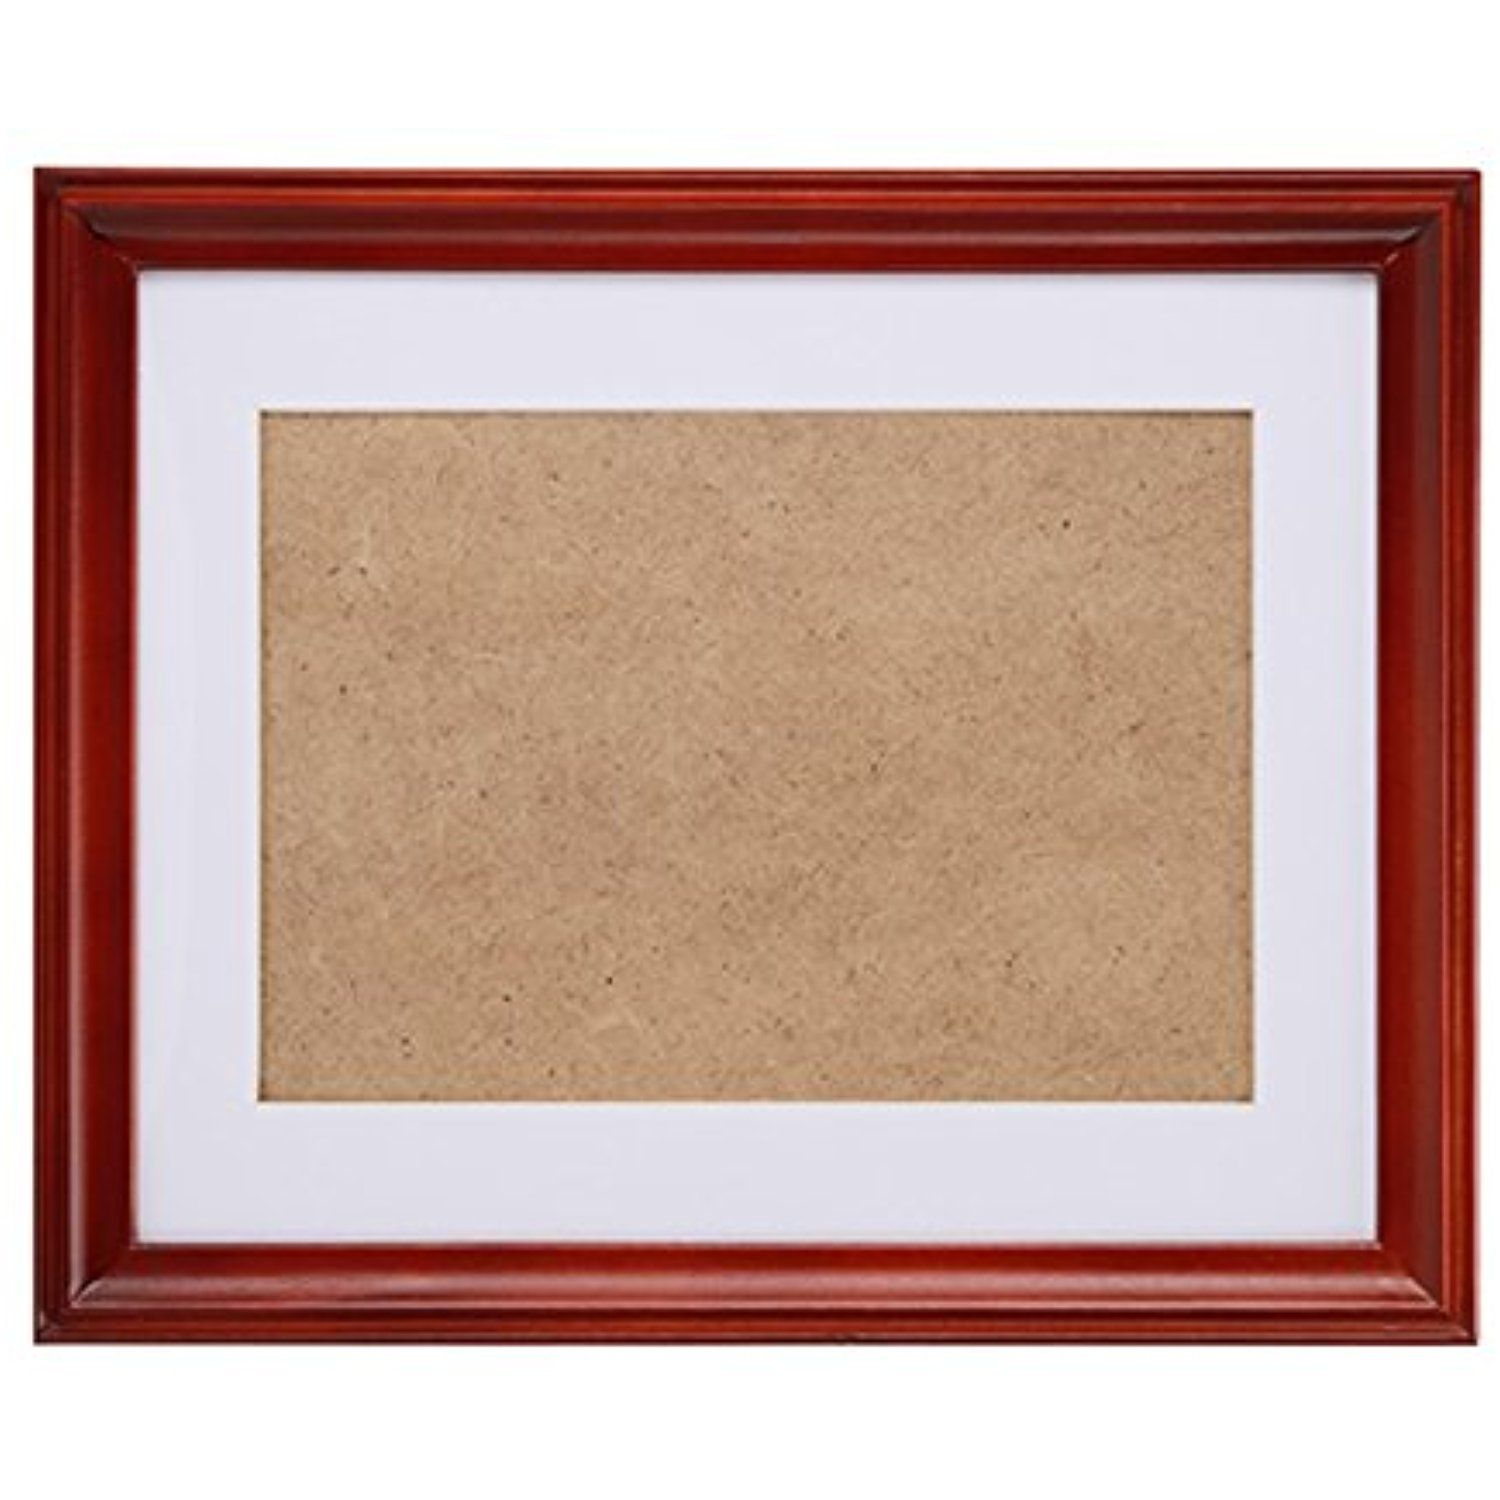 Fastnova 11x13 Inch Narrow Cherry Red Wood Picture Frames Made To Display Picture 8x10 With Mat Or 10x12 W Wood Picture Frames Picture Display Picture Mounting